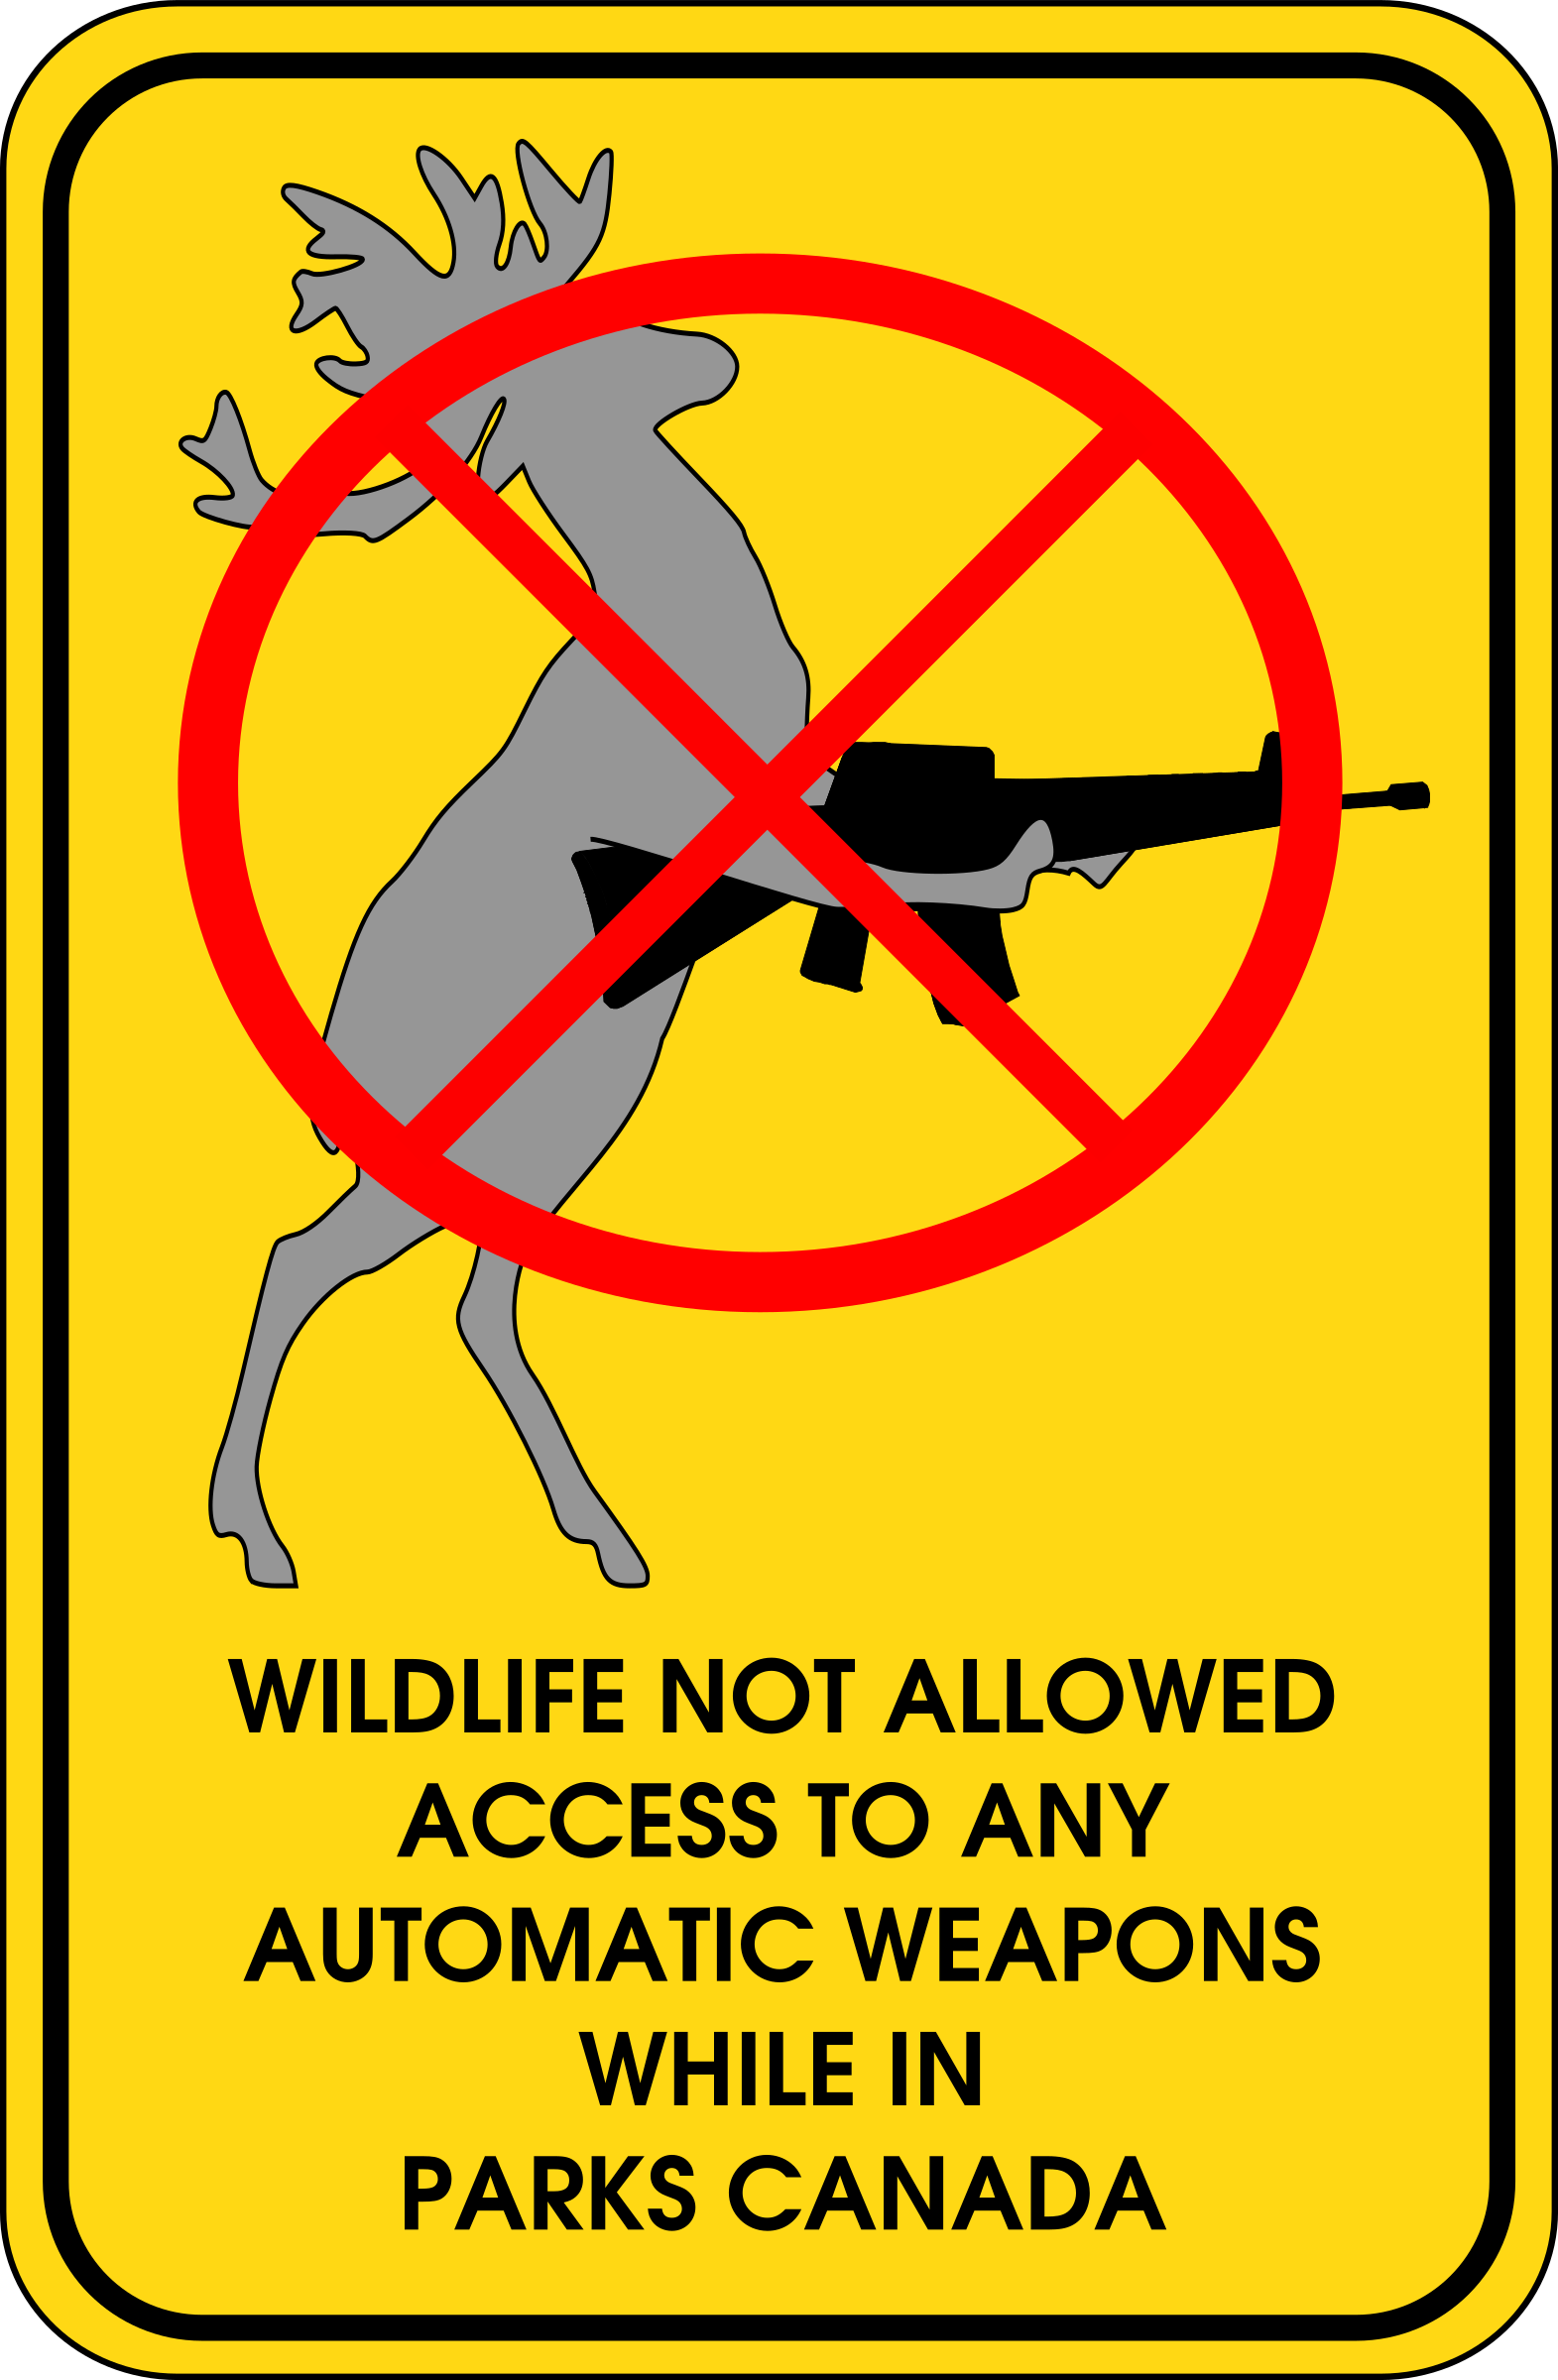 Wildlife Not Allowed To Access Automatic Weapons While In Parks Canada by beason